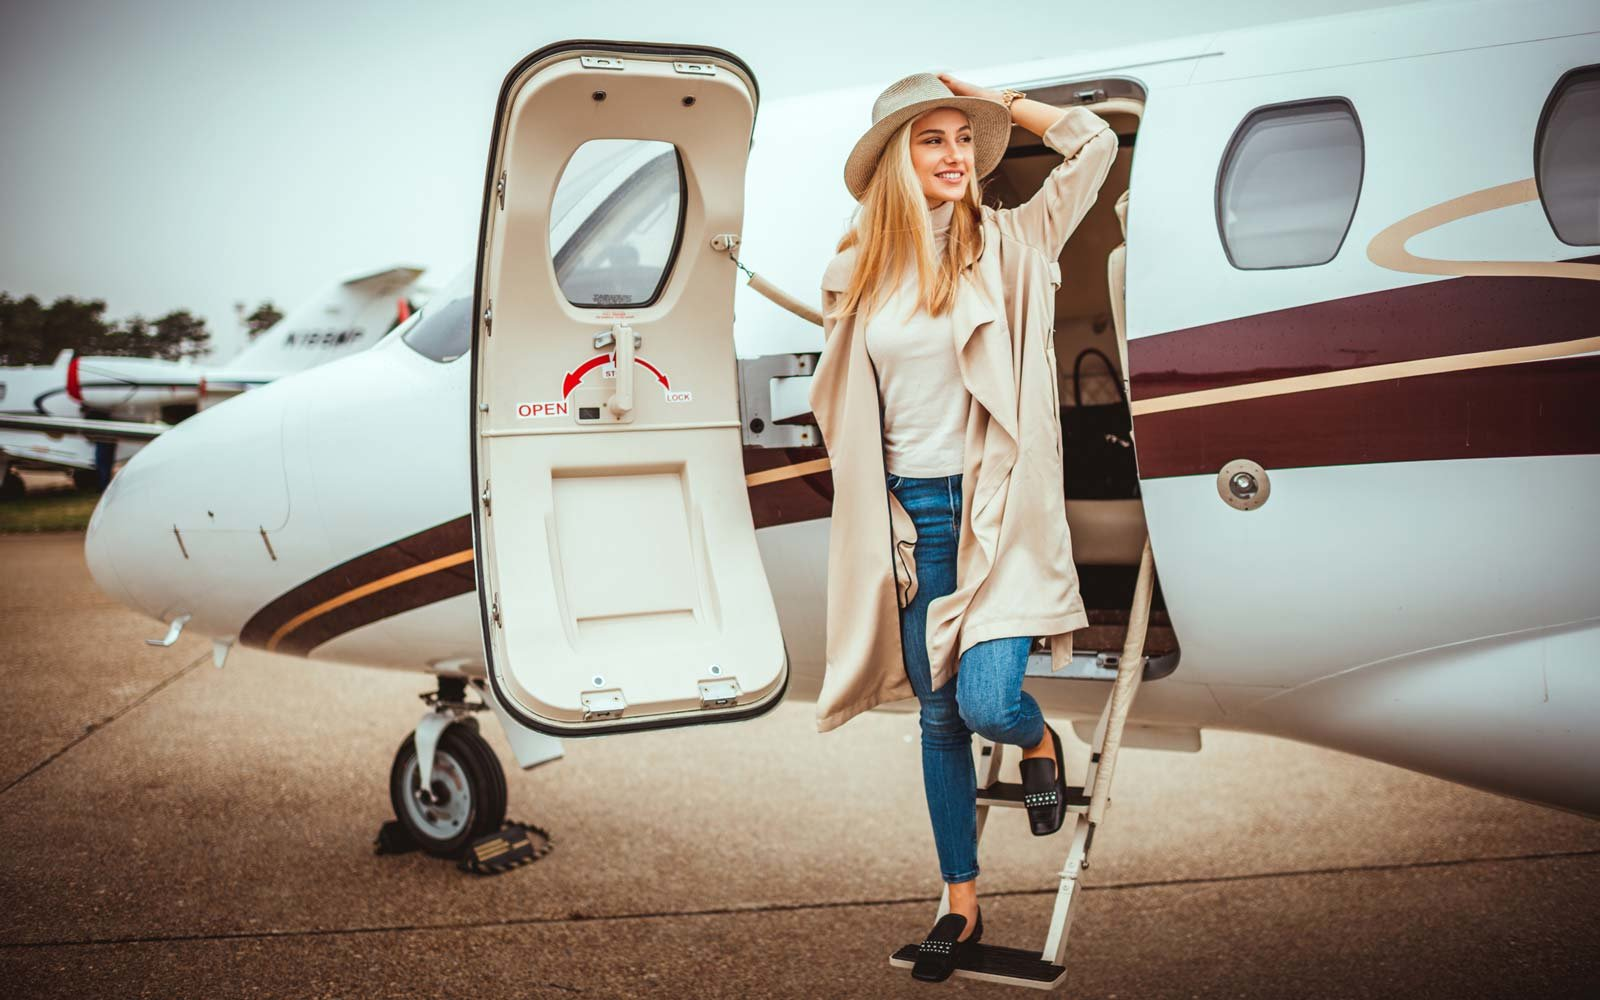 Young elegant rich woman exiting a private jet parked on a runway